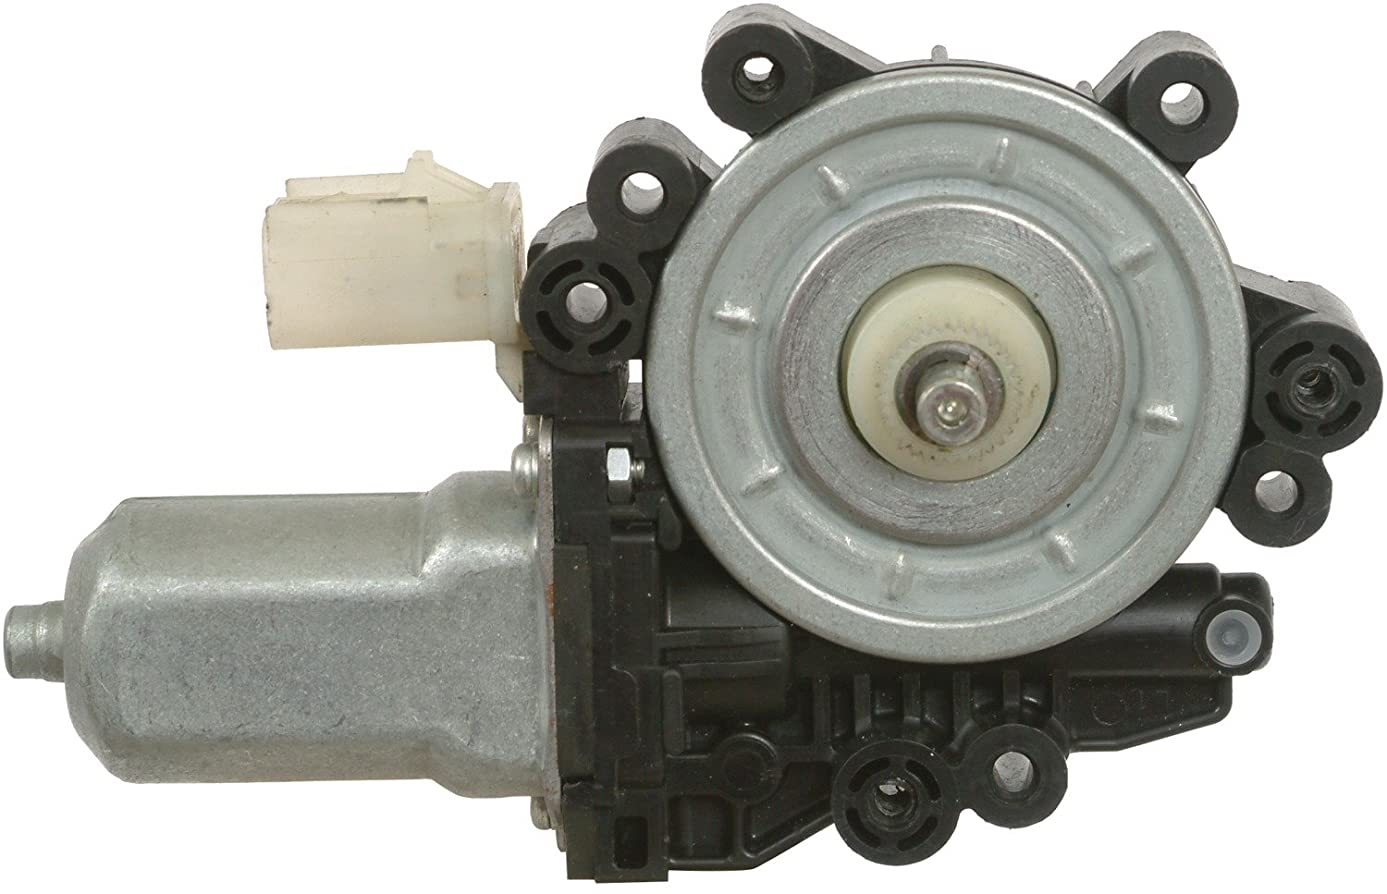 A1 Cardone 47-13067 Remanufactured Window Lift Motor